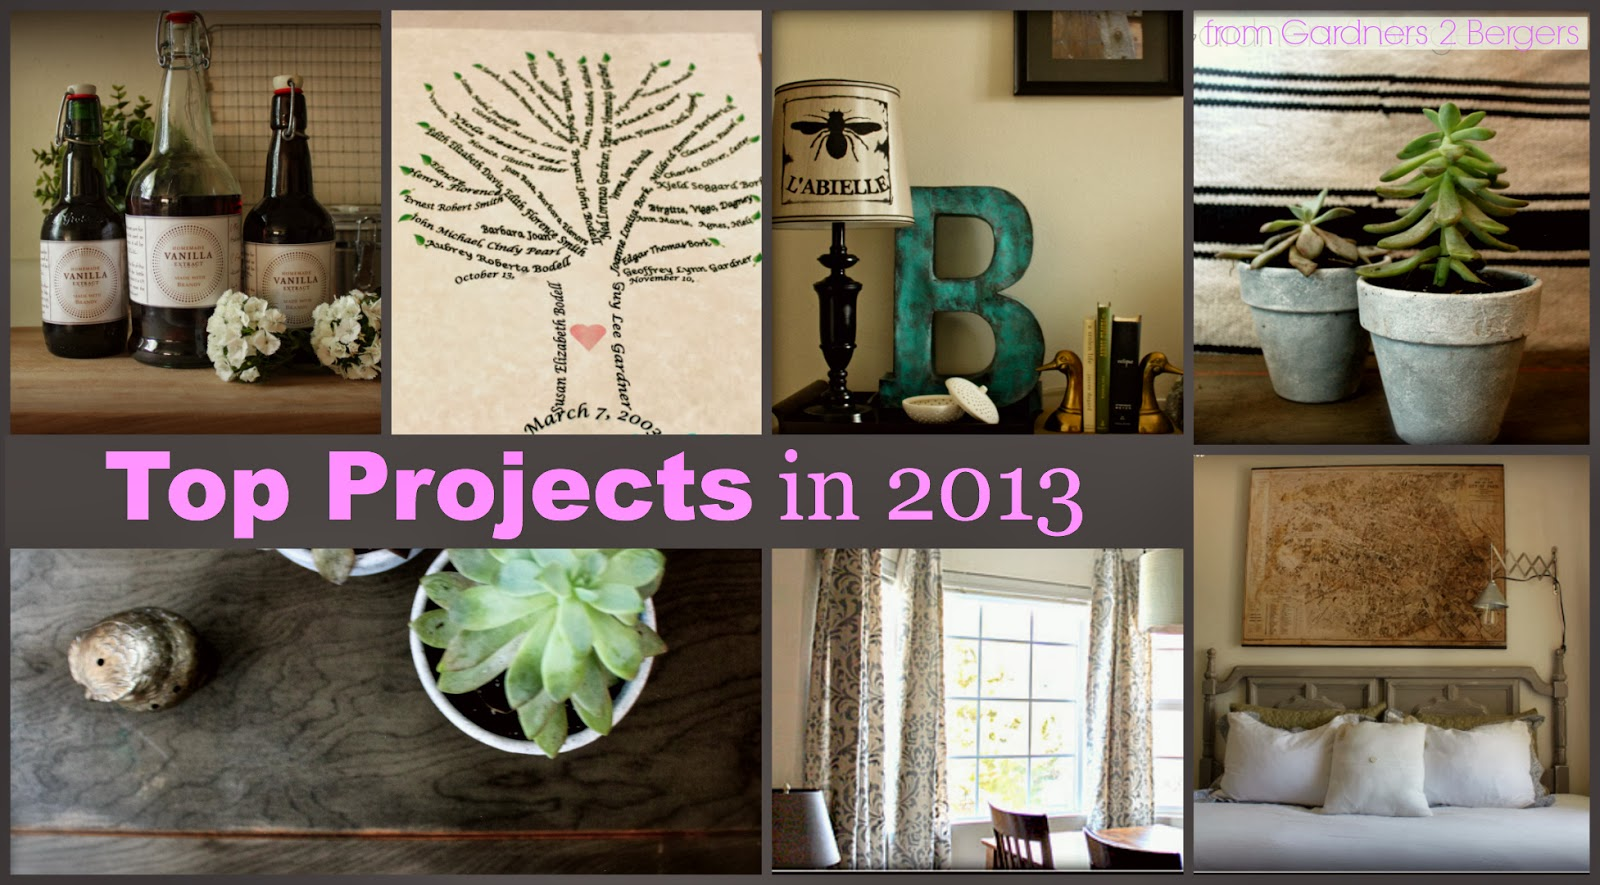 From Gardners 2 Bergers Top 10 Projects In 2013